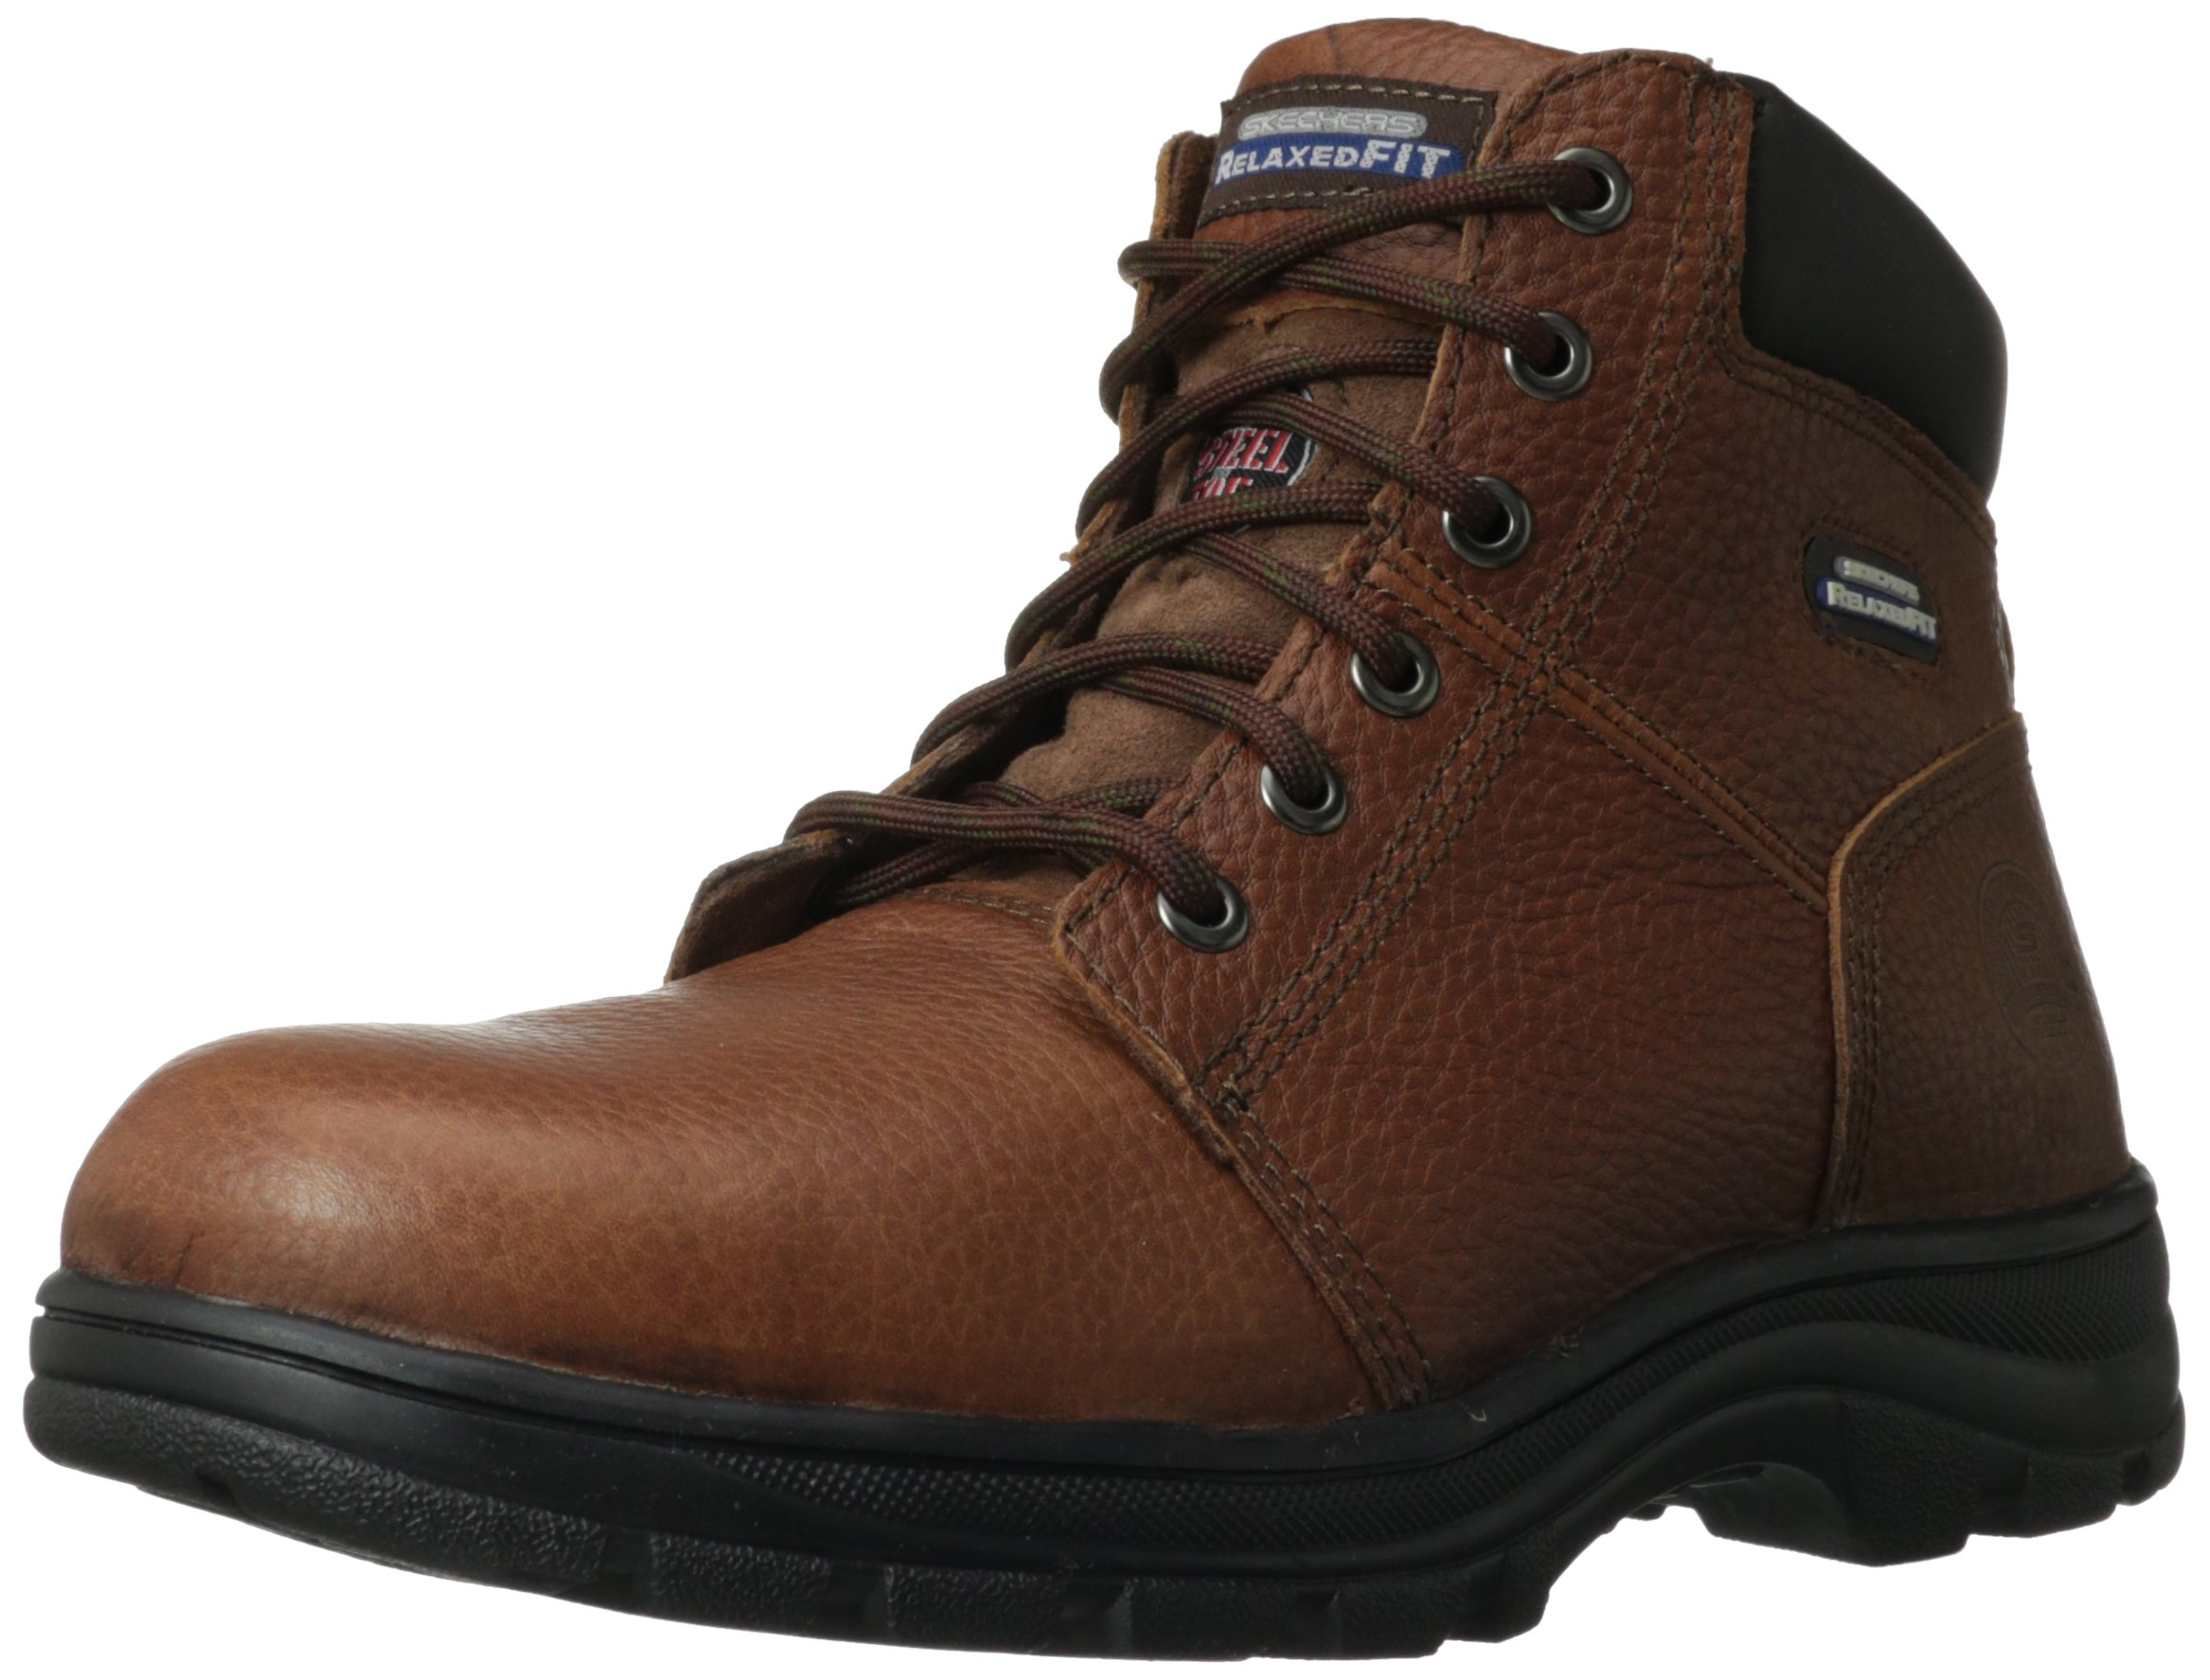 Skechers for Work Men's Workshire Relaxed Fit Work Steel Toe Boot,Brown,14 M US